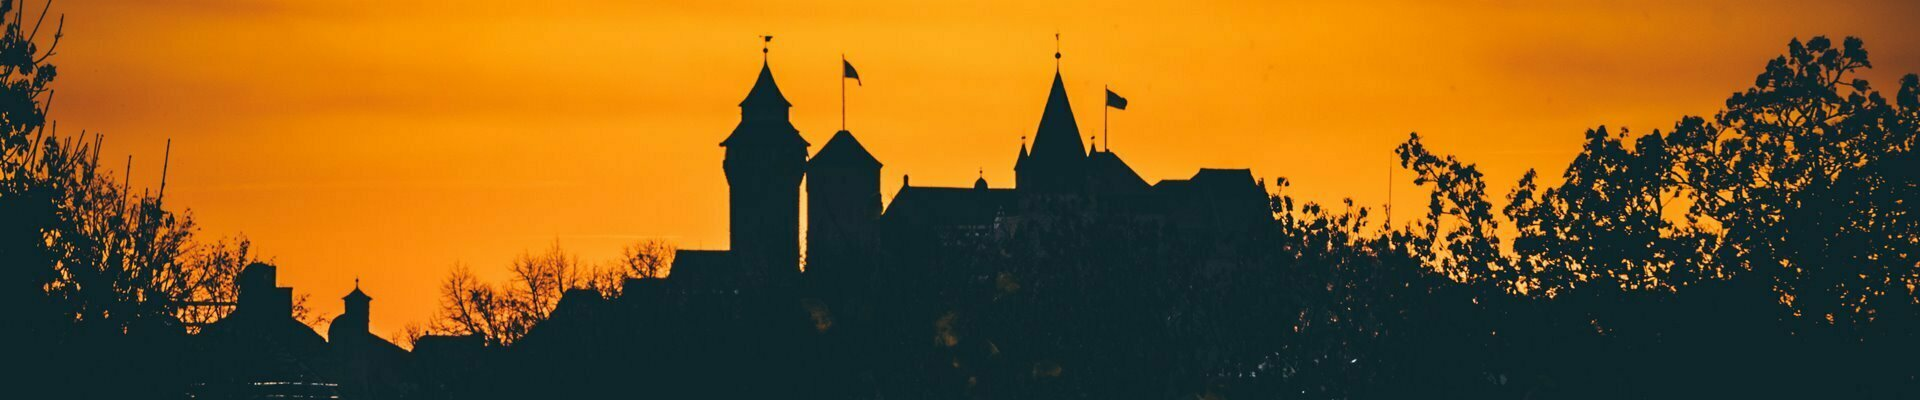 A silhouette of Nuremberg Castle at sunset.